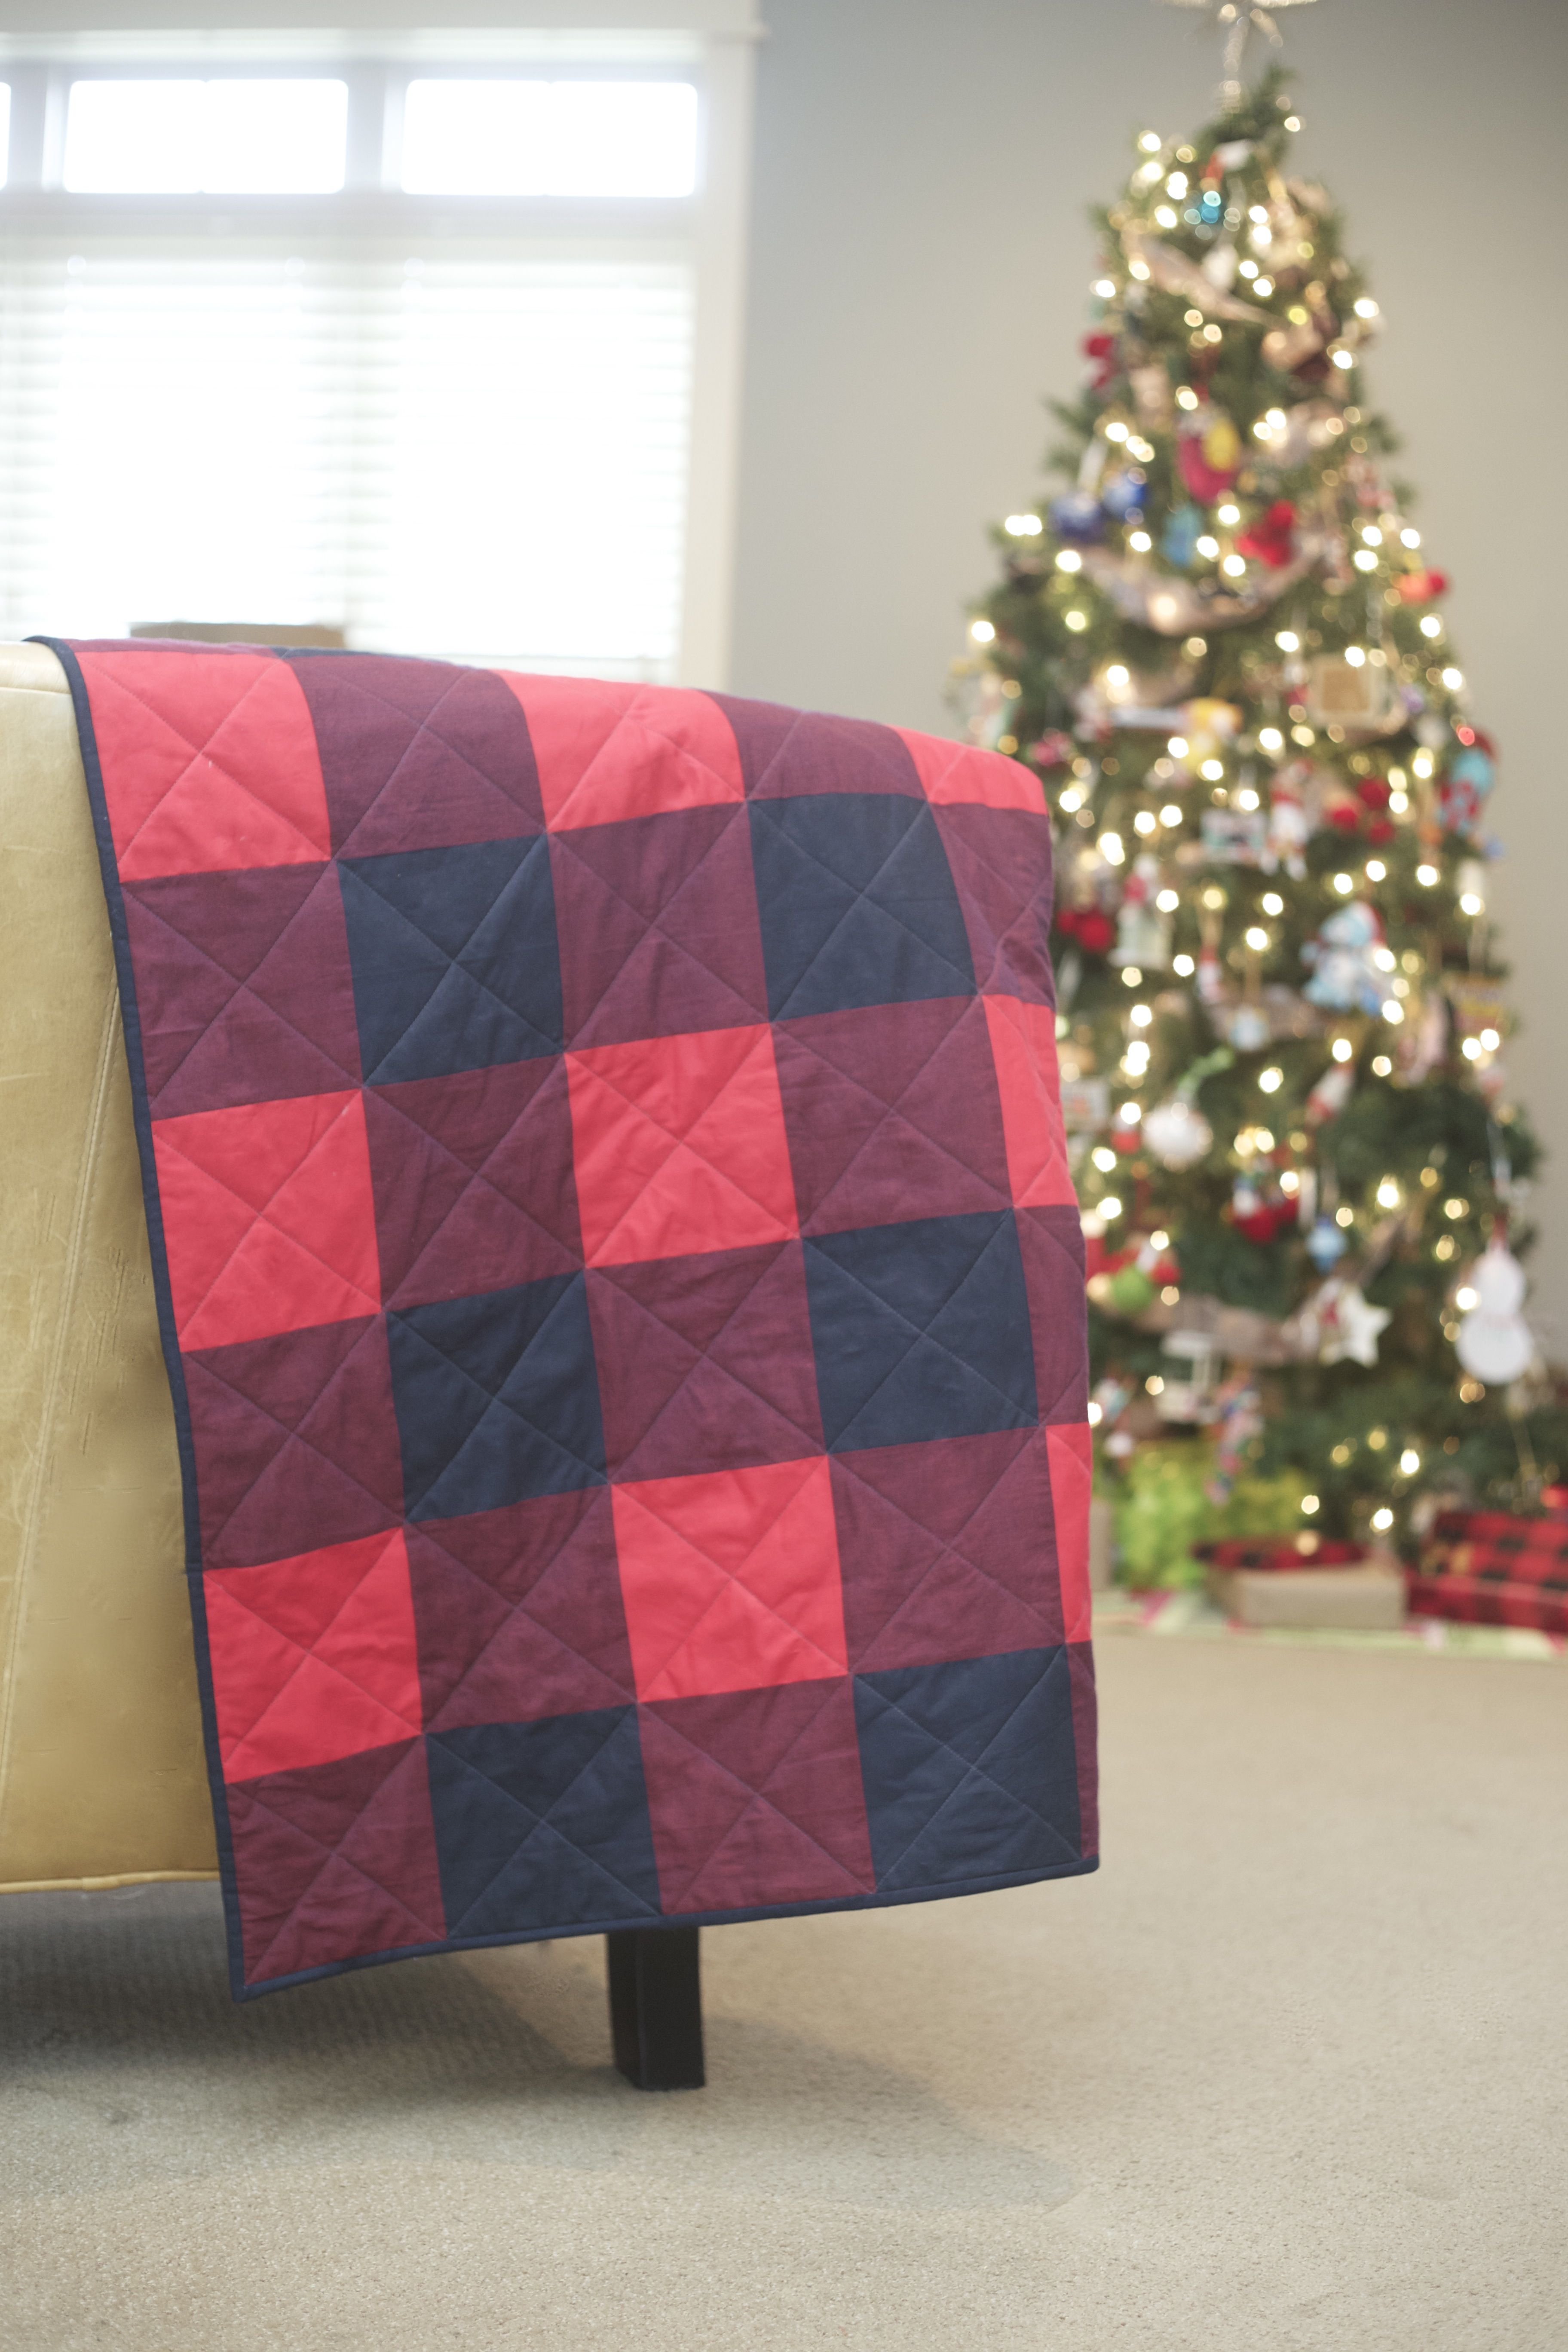 Buffalo Check Quilt Pattern From Empty Bobbin Sewing